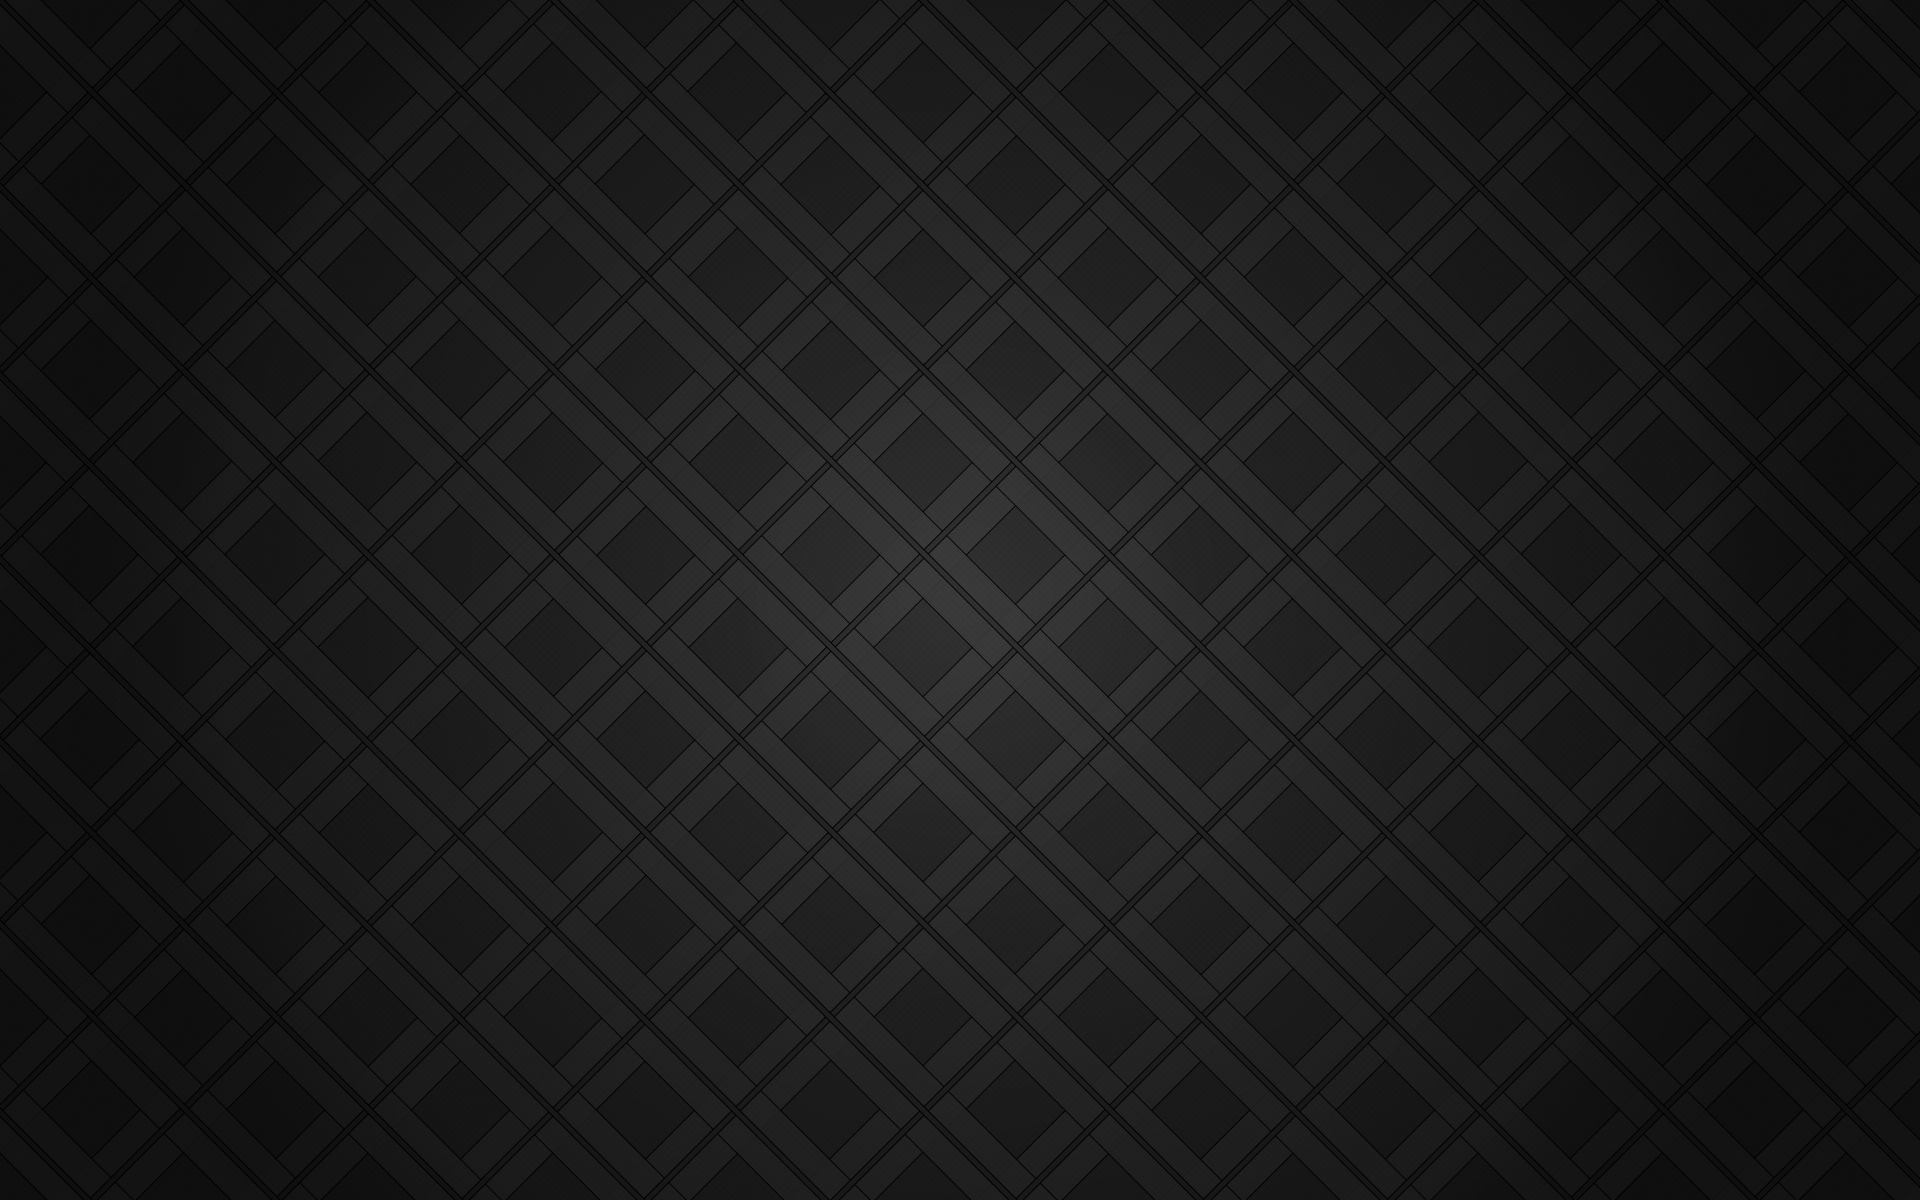 Black Cubic Wallpaper Background